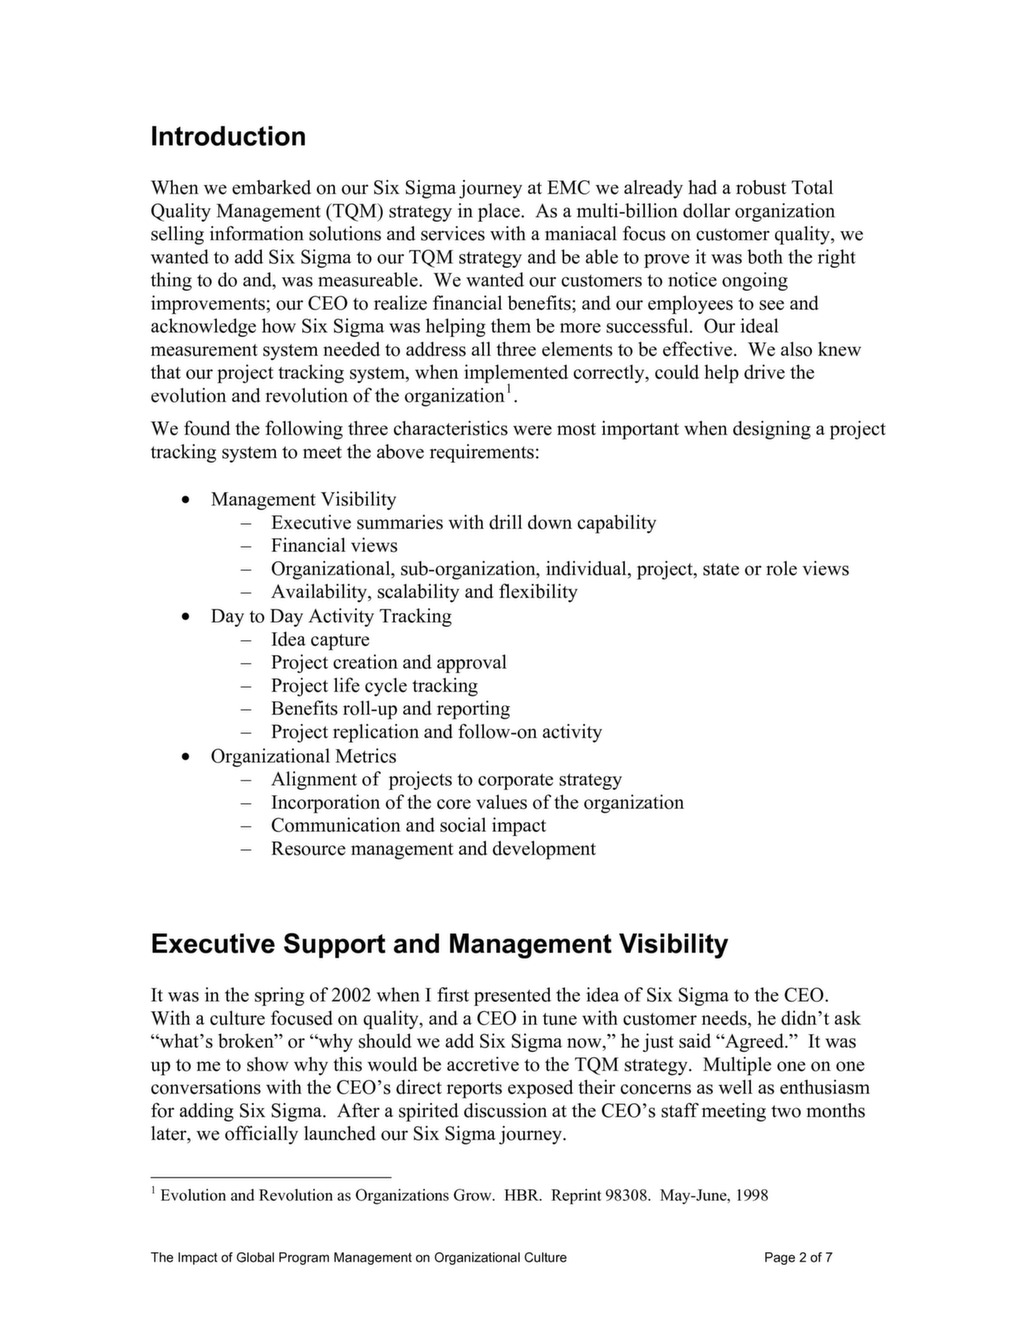 The Impact of Global Program Management on Organizational Culture